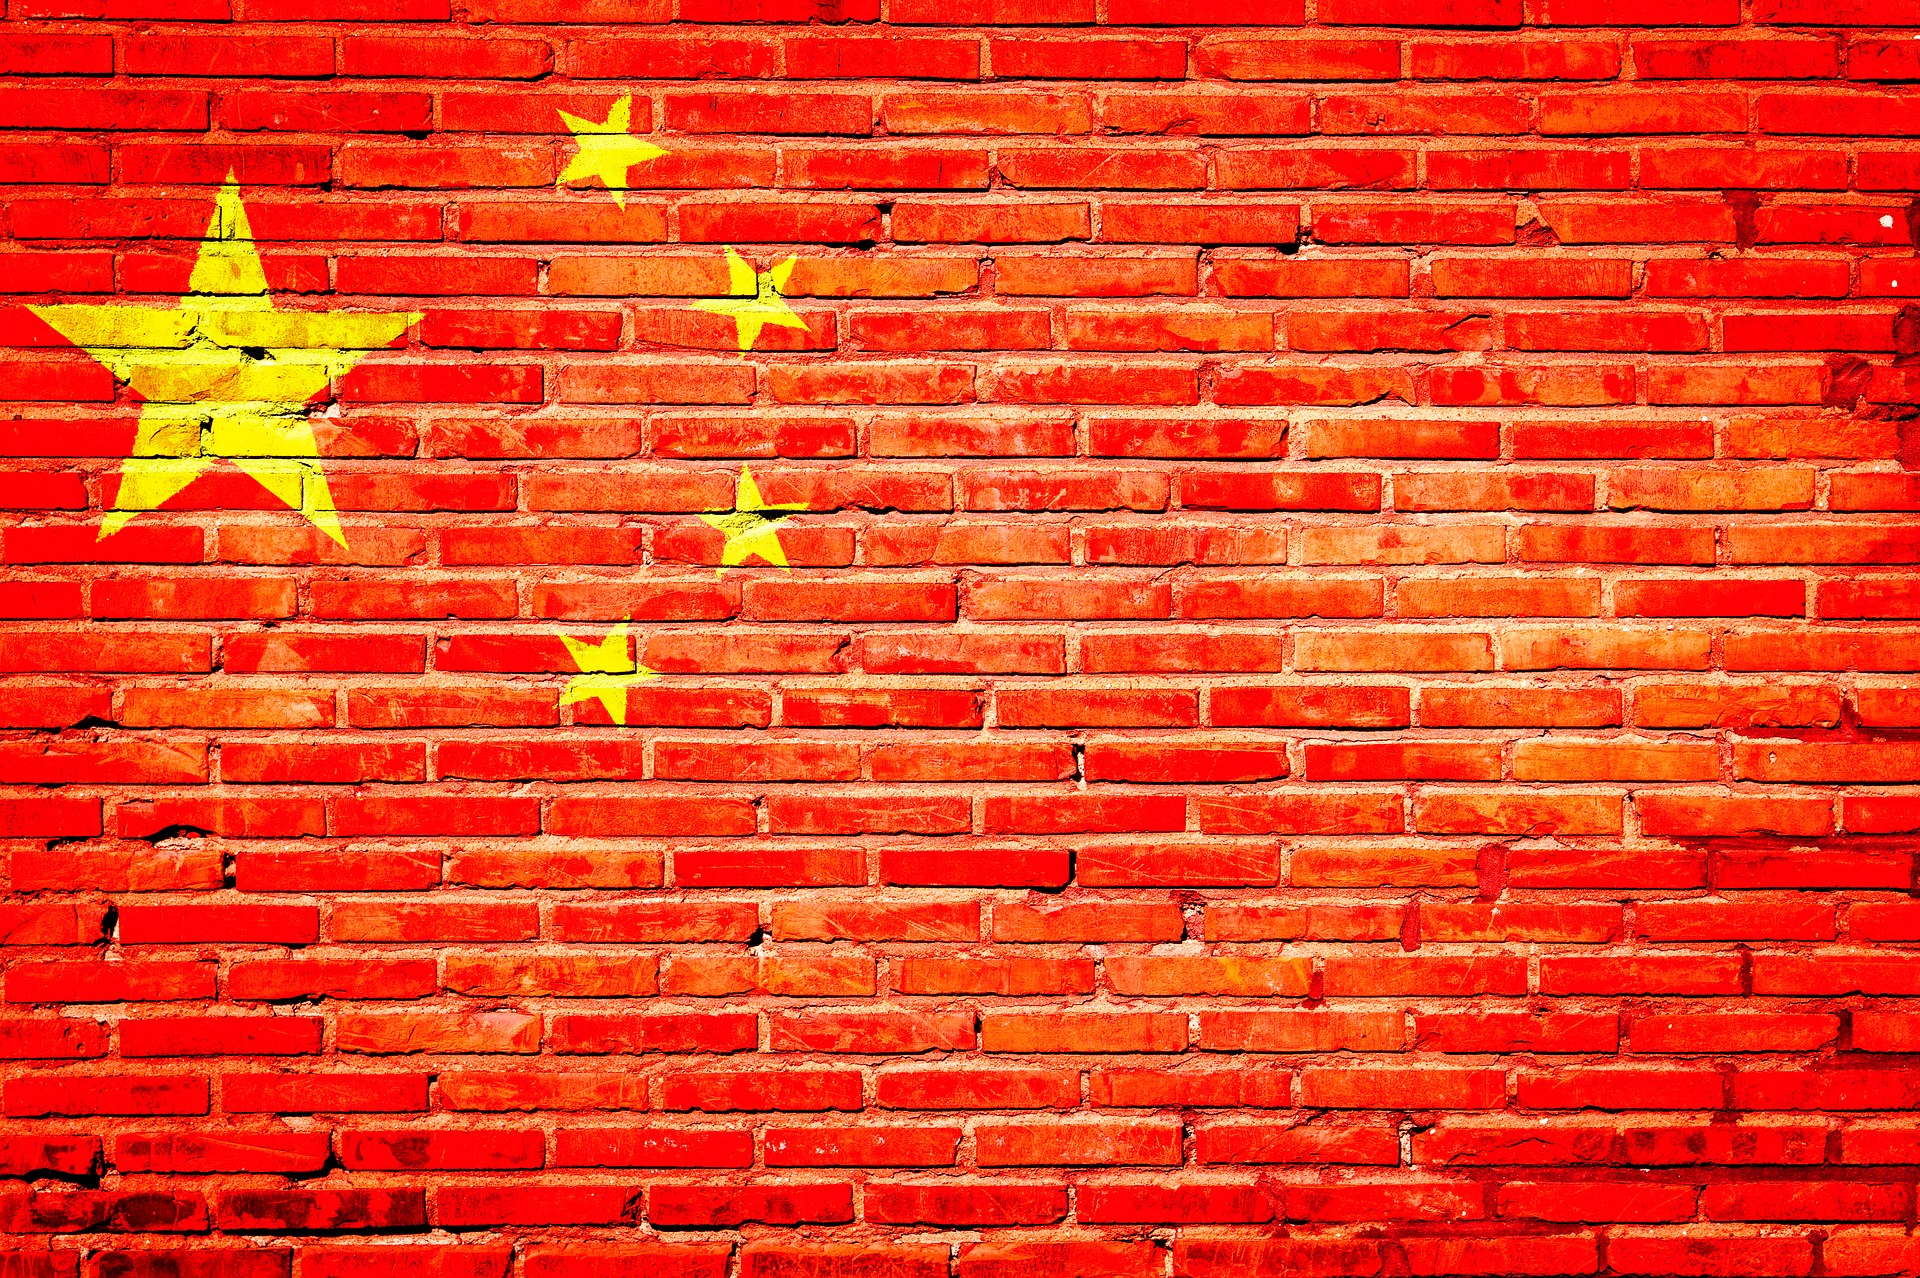 Image of China's flag painted on wall